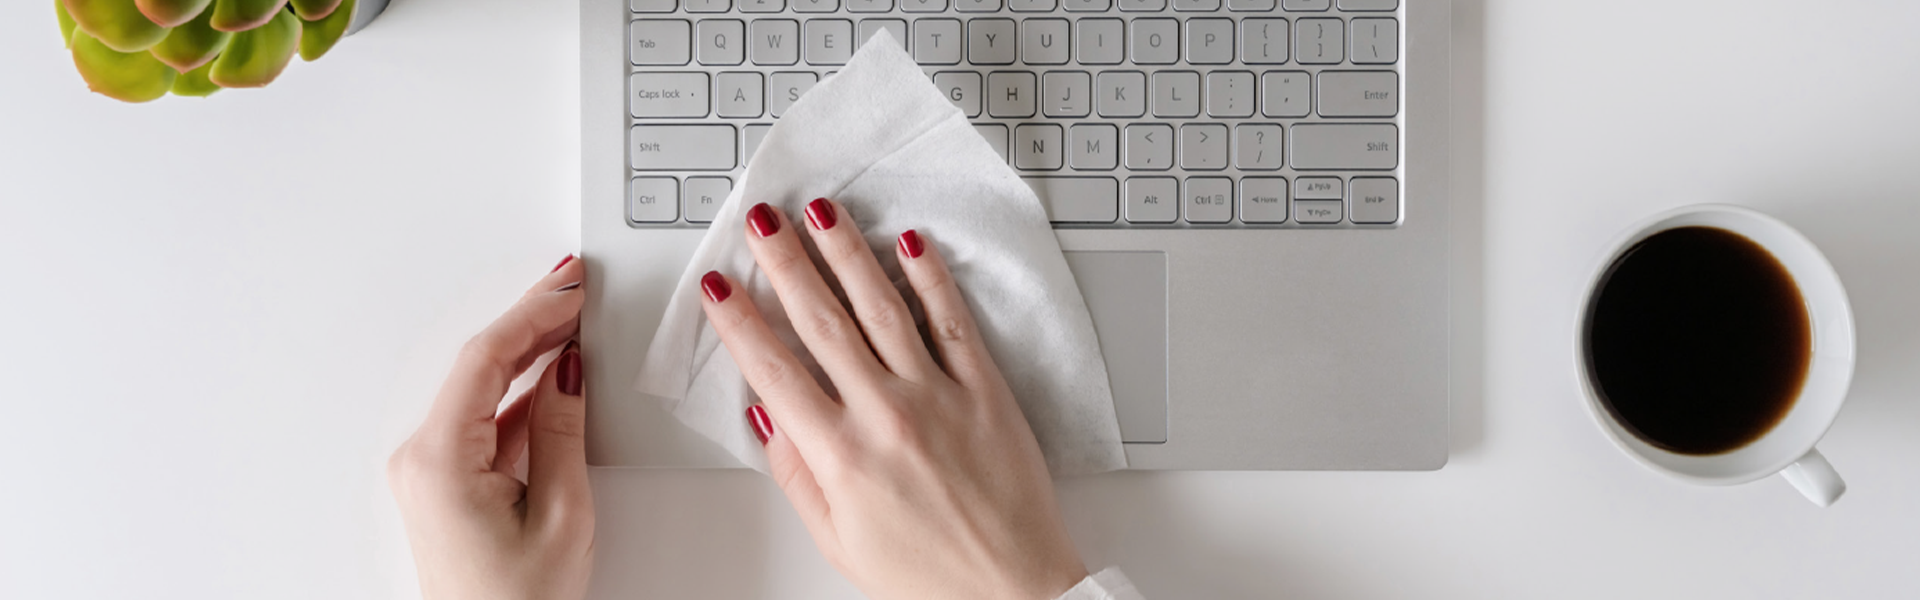 A hand with red nail polish using a sanitizing wipe to wipe down a laptop